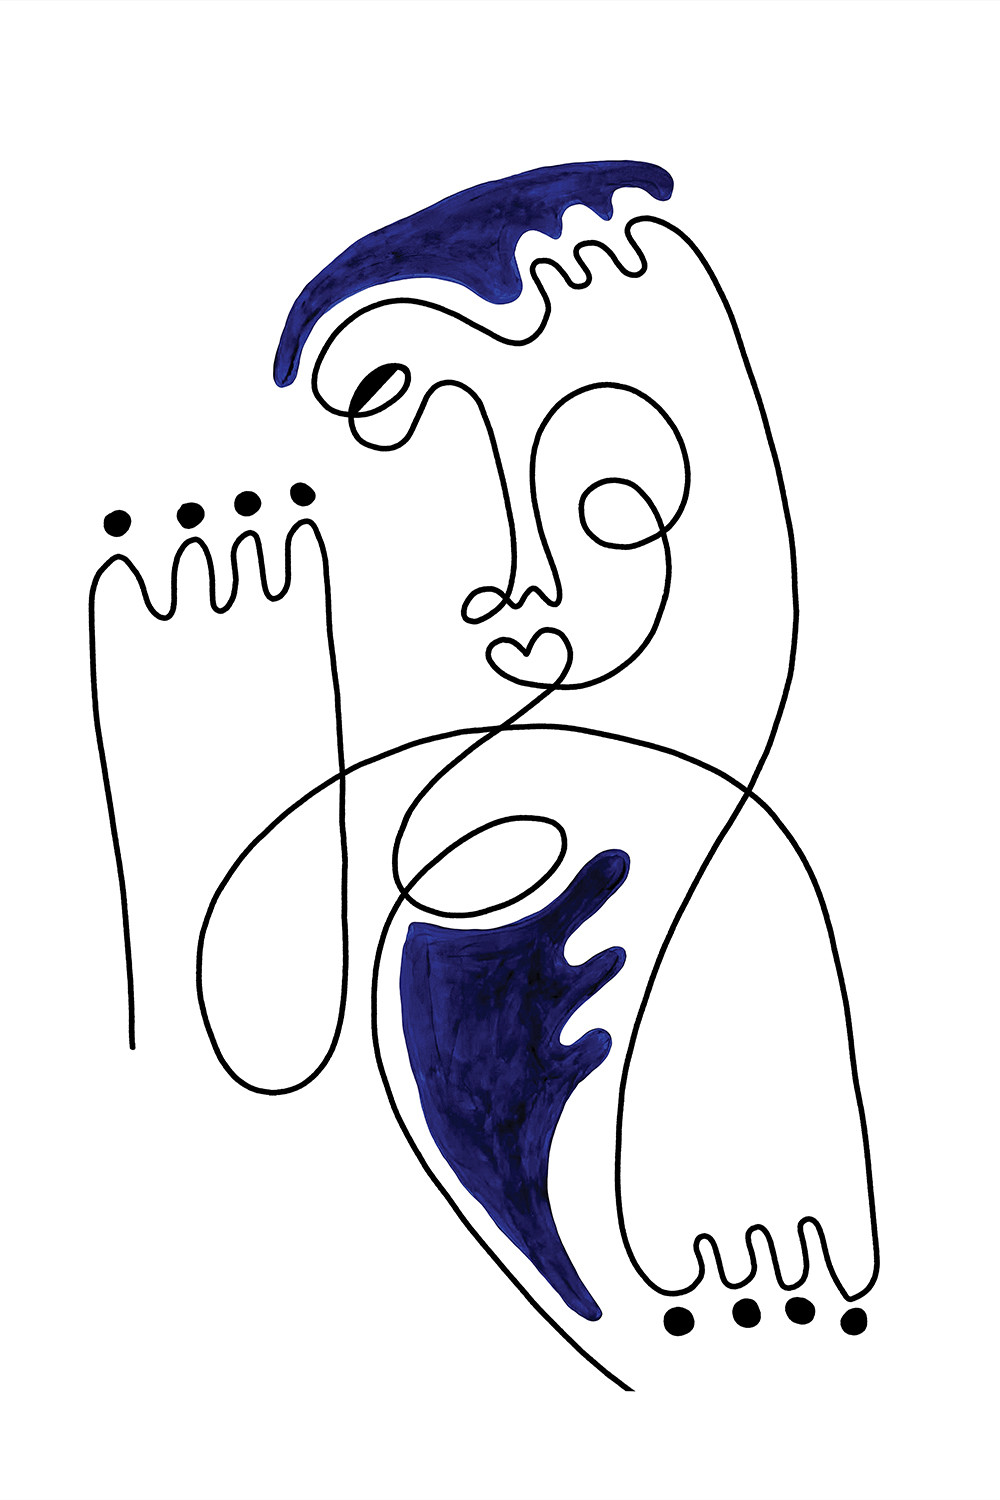 Minimalist abstract line illustration of a face and two hands with blue shapes around it